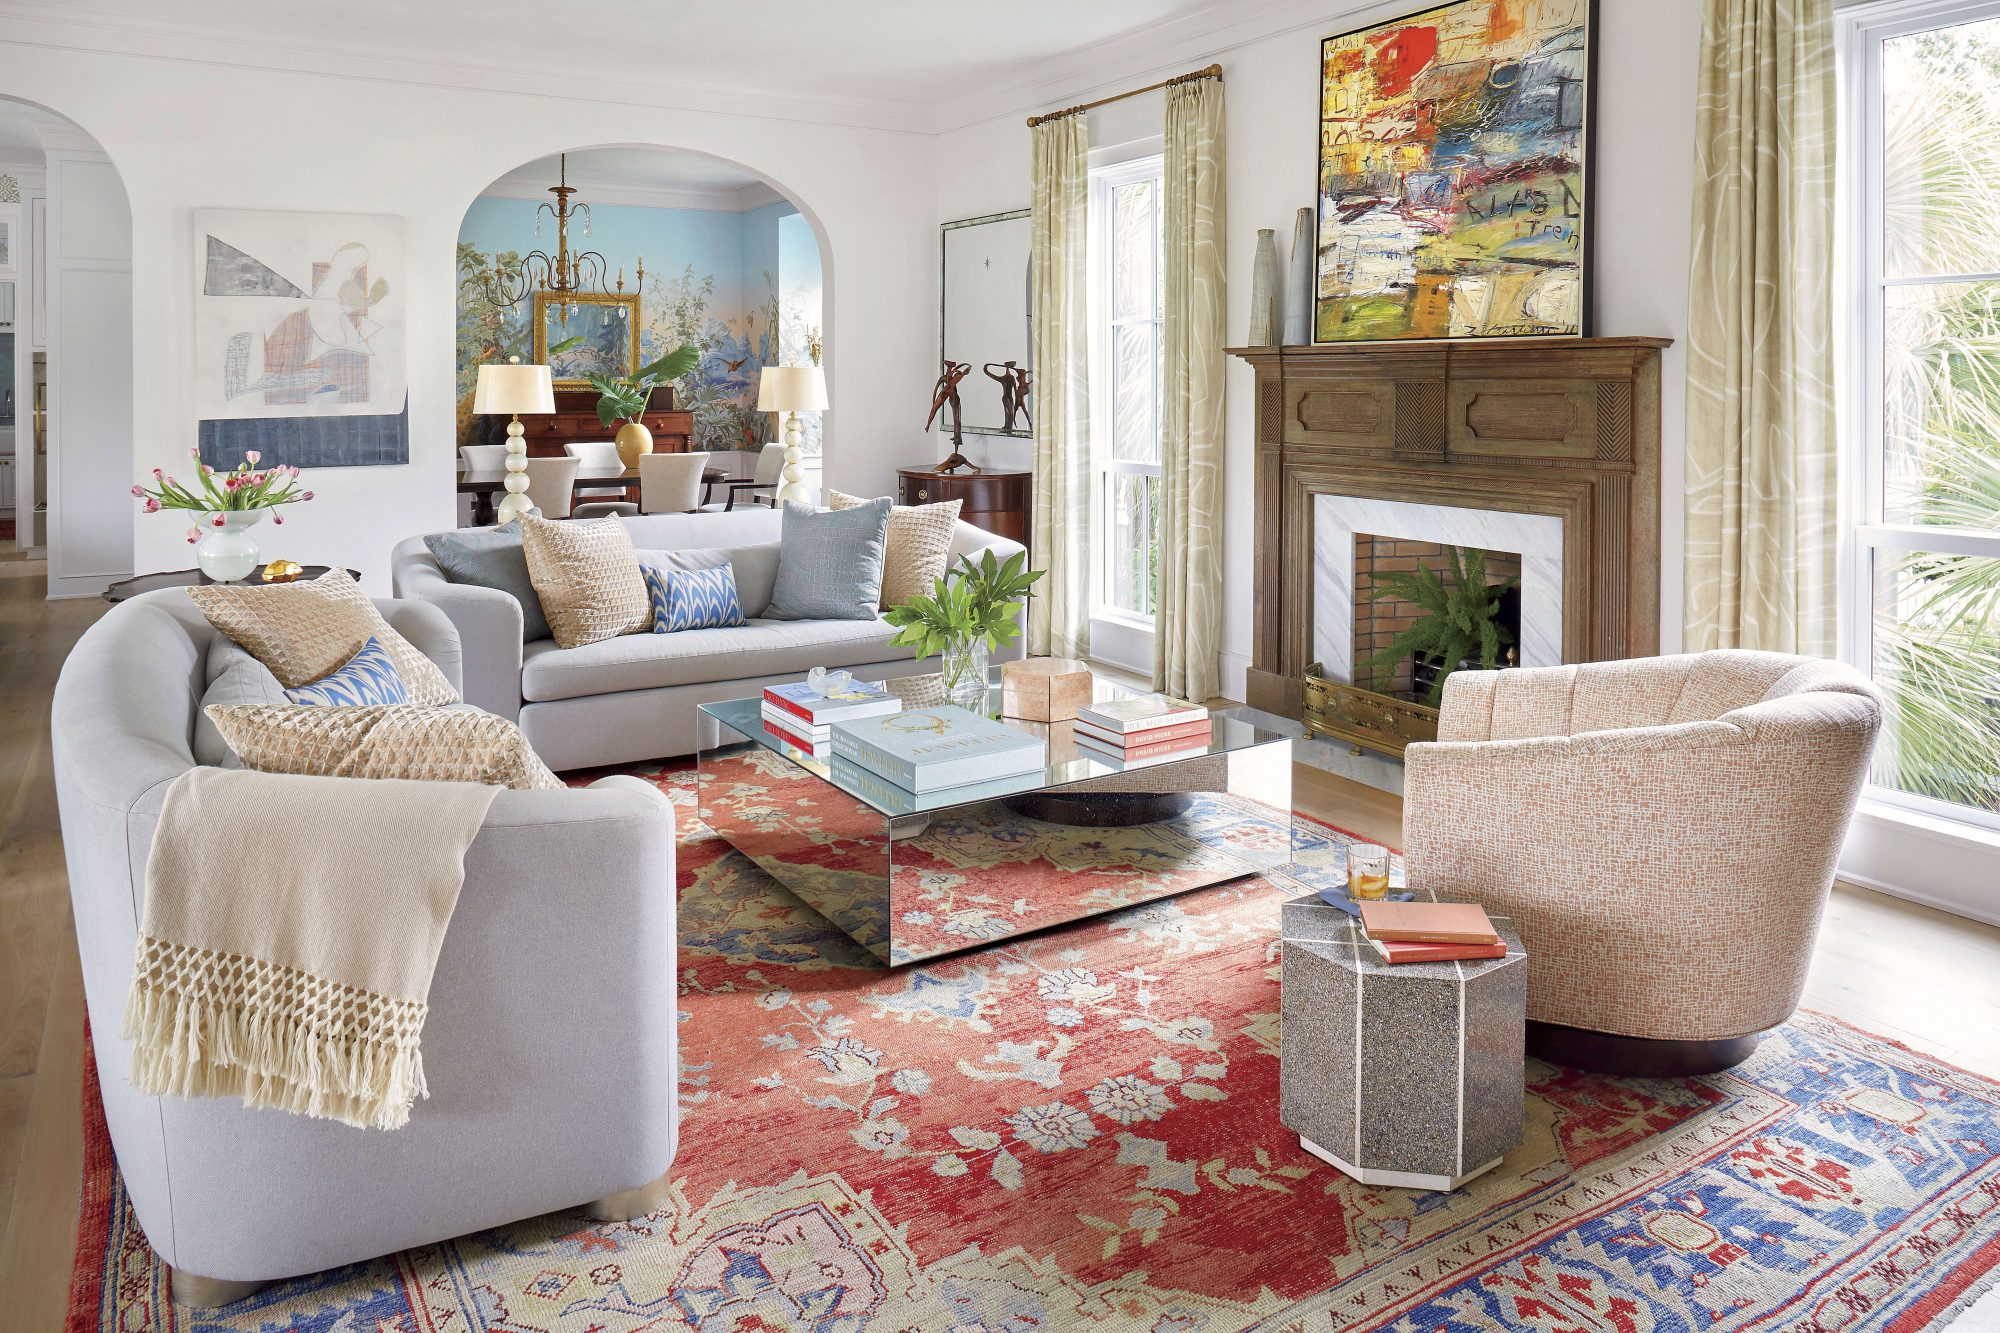 Get Inspired With Our Favorite Neutrals